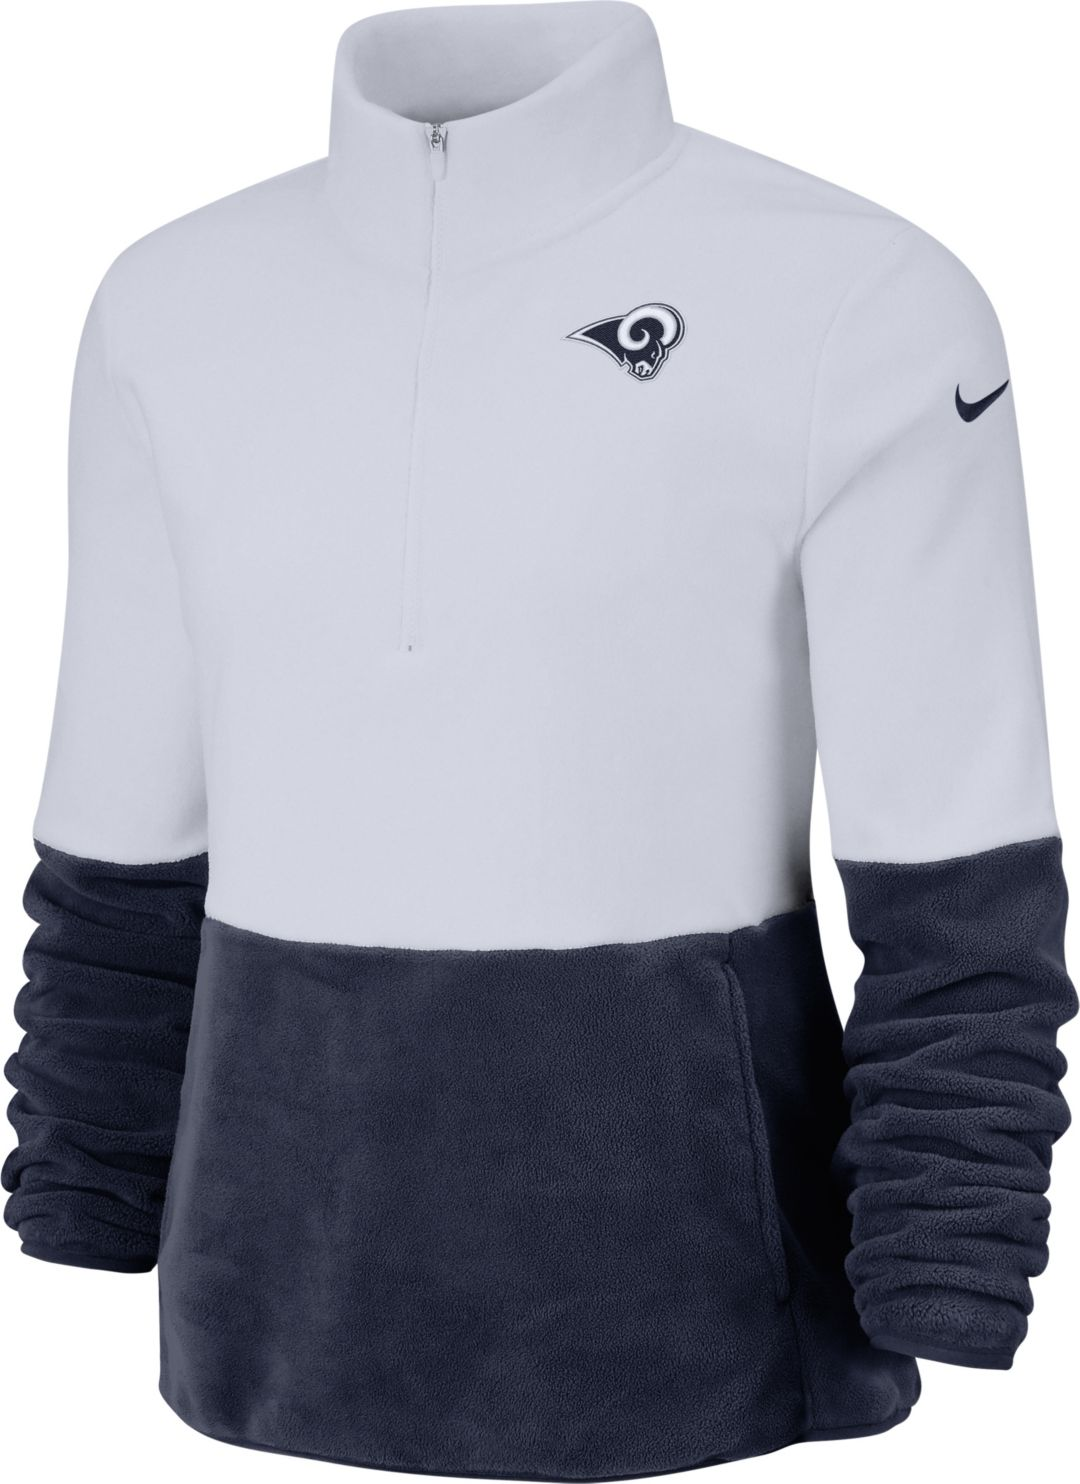 timeless design 733f3 25bfa Nike Women's Los Angeles Rams Therma-FIT Fleece Half-Zip ...